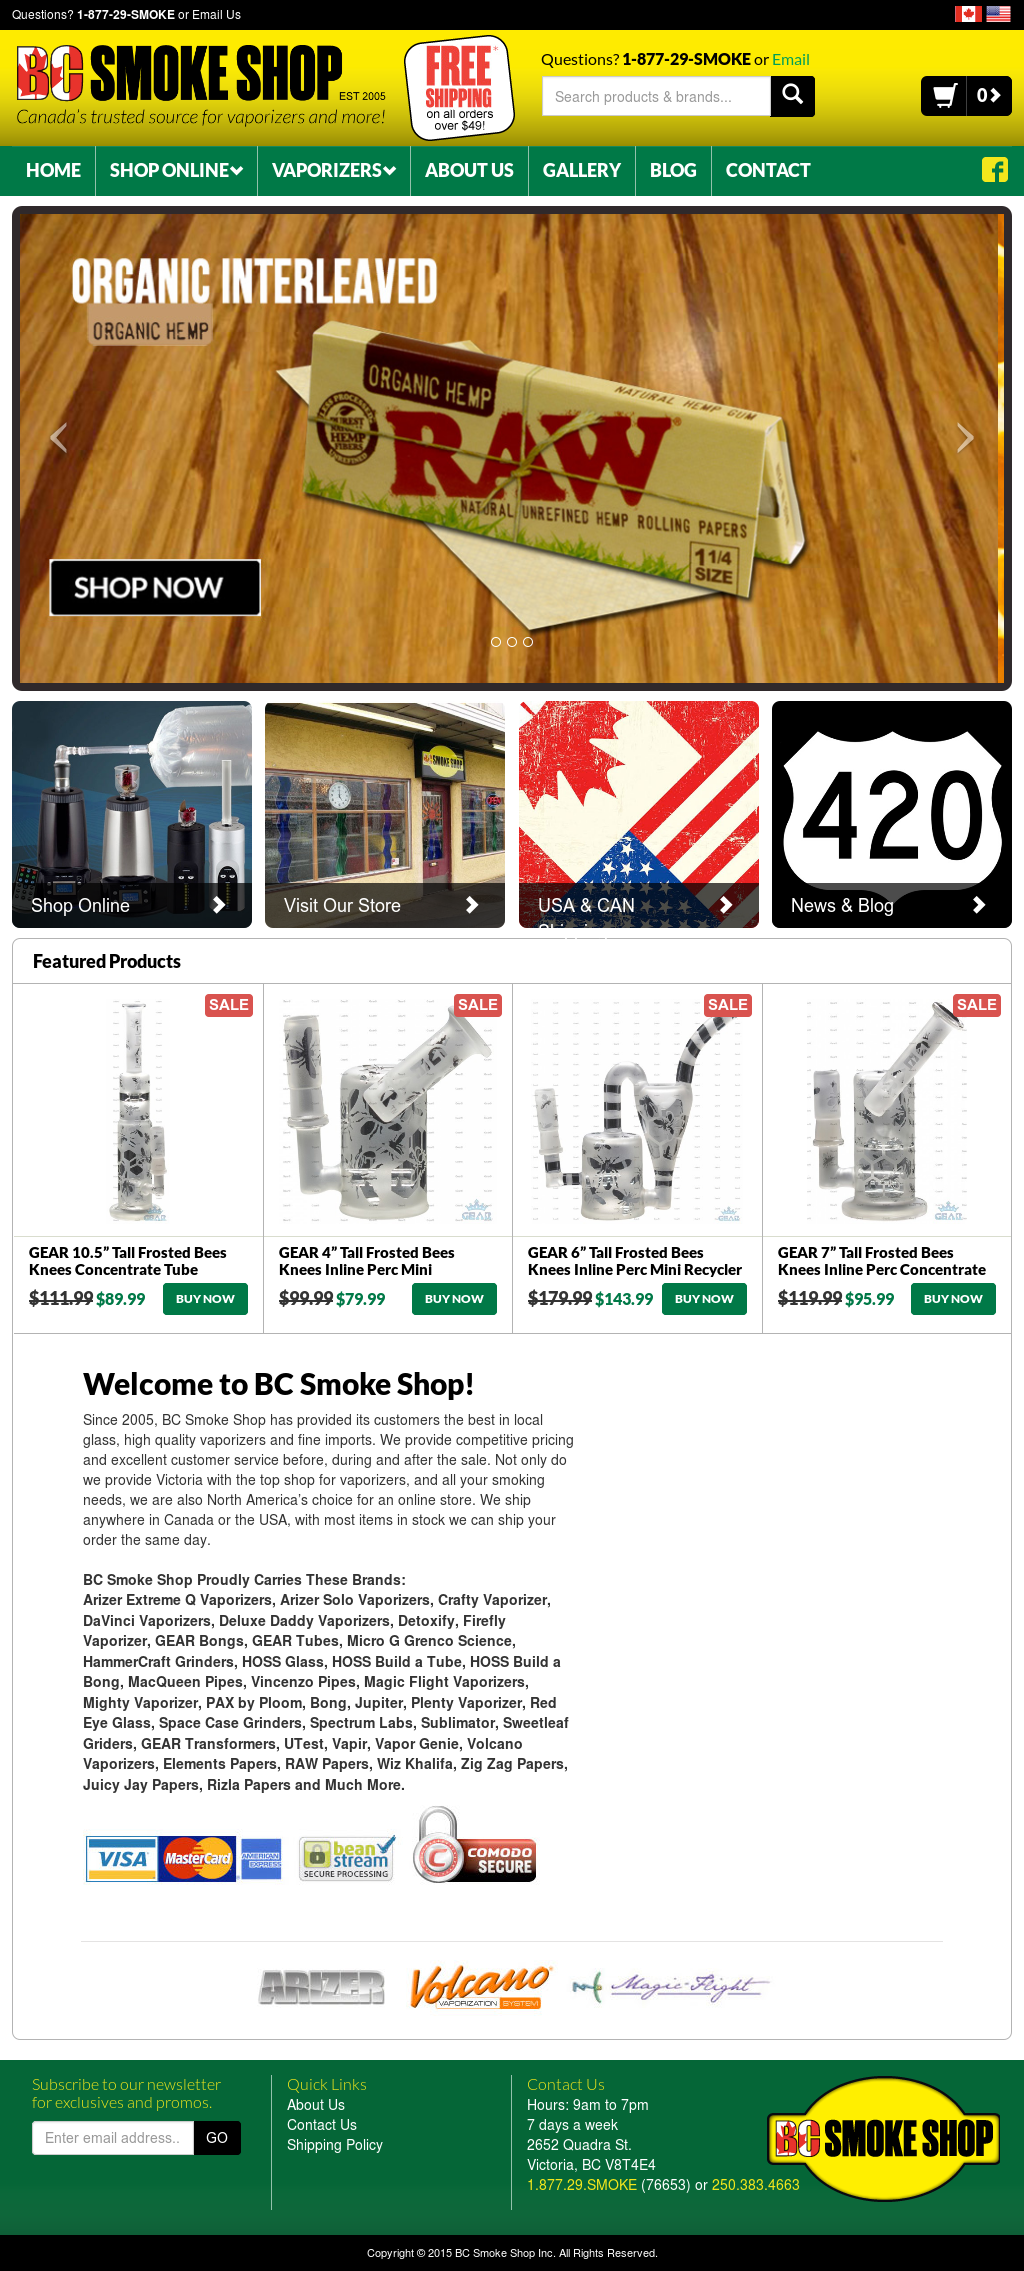 Bc Smoke Shop Competitors, Revenue and Employees - Owler Company Profile